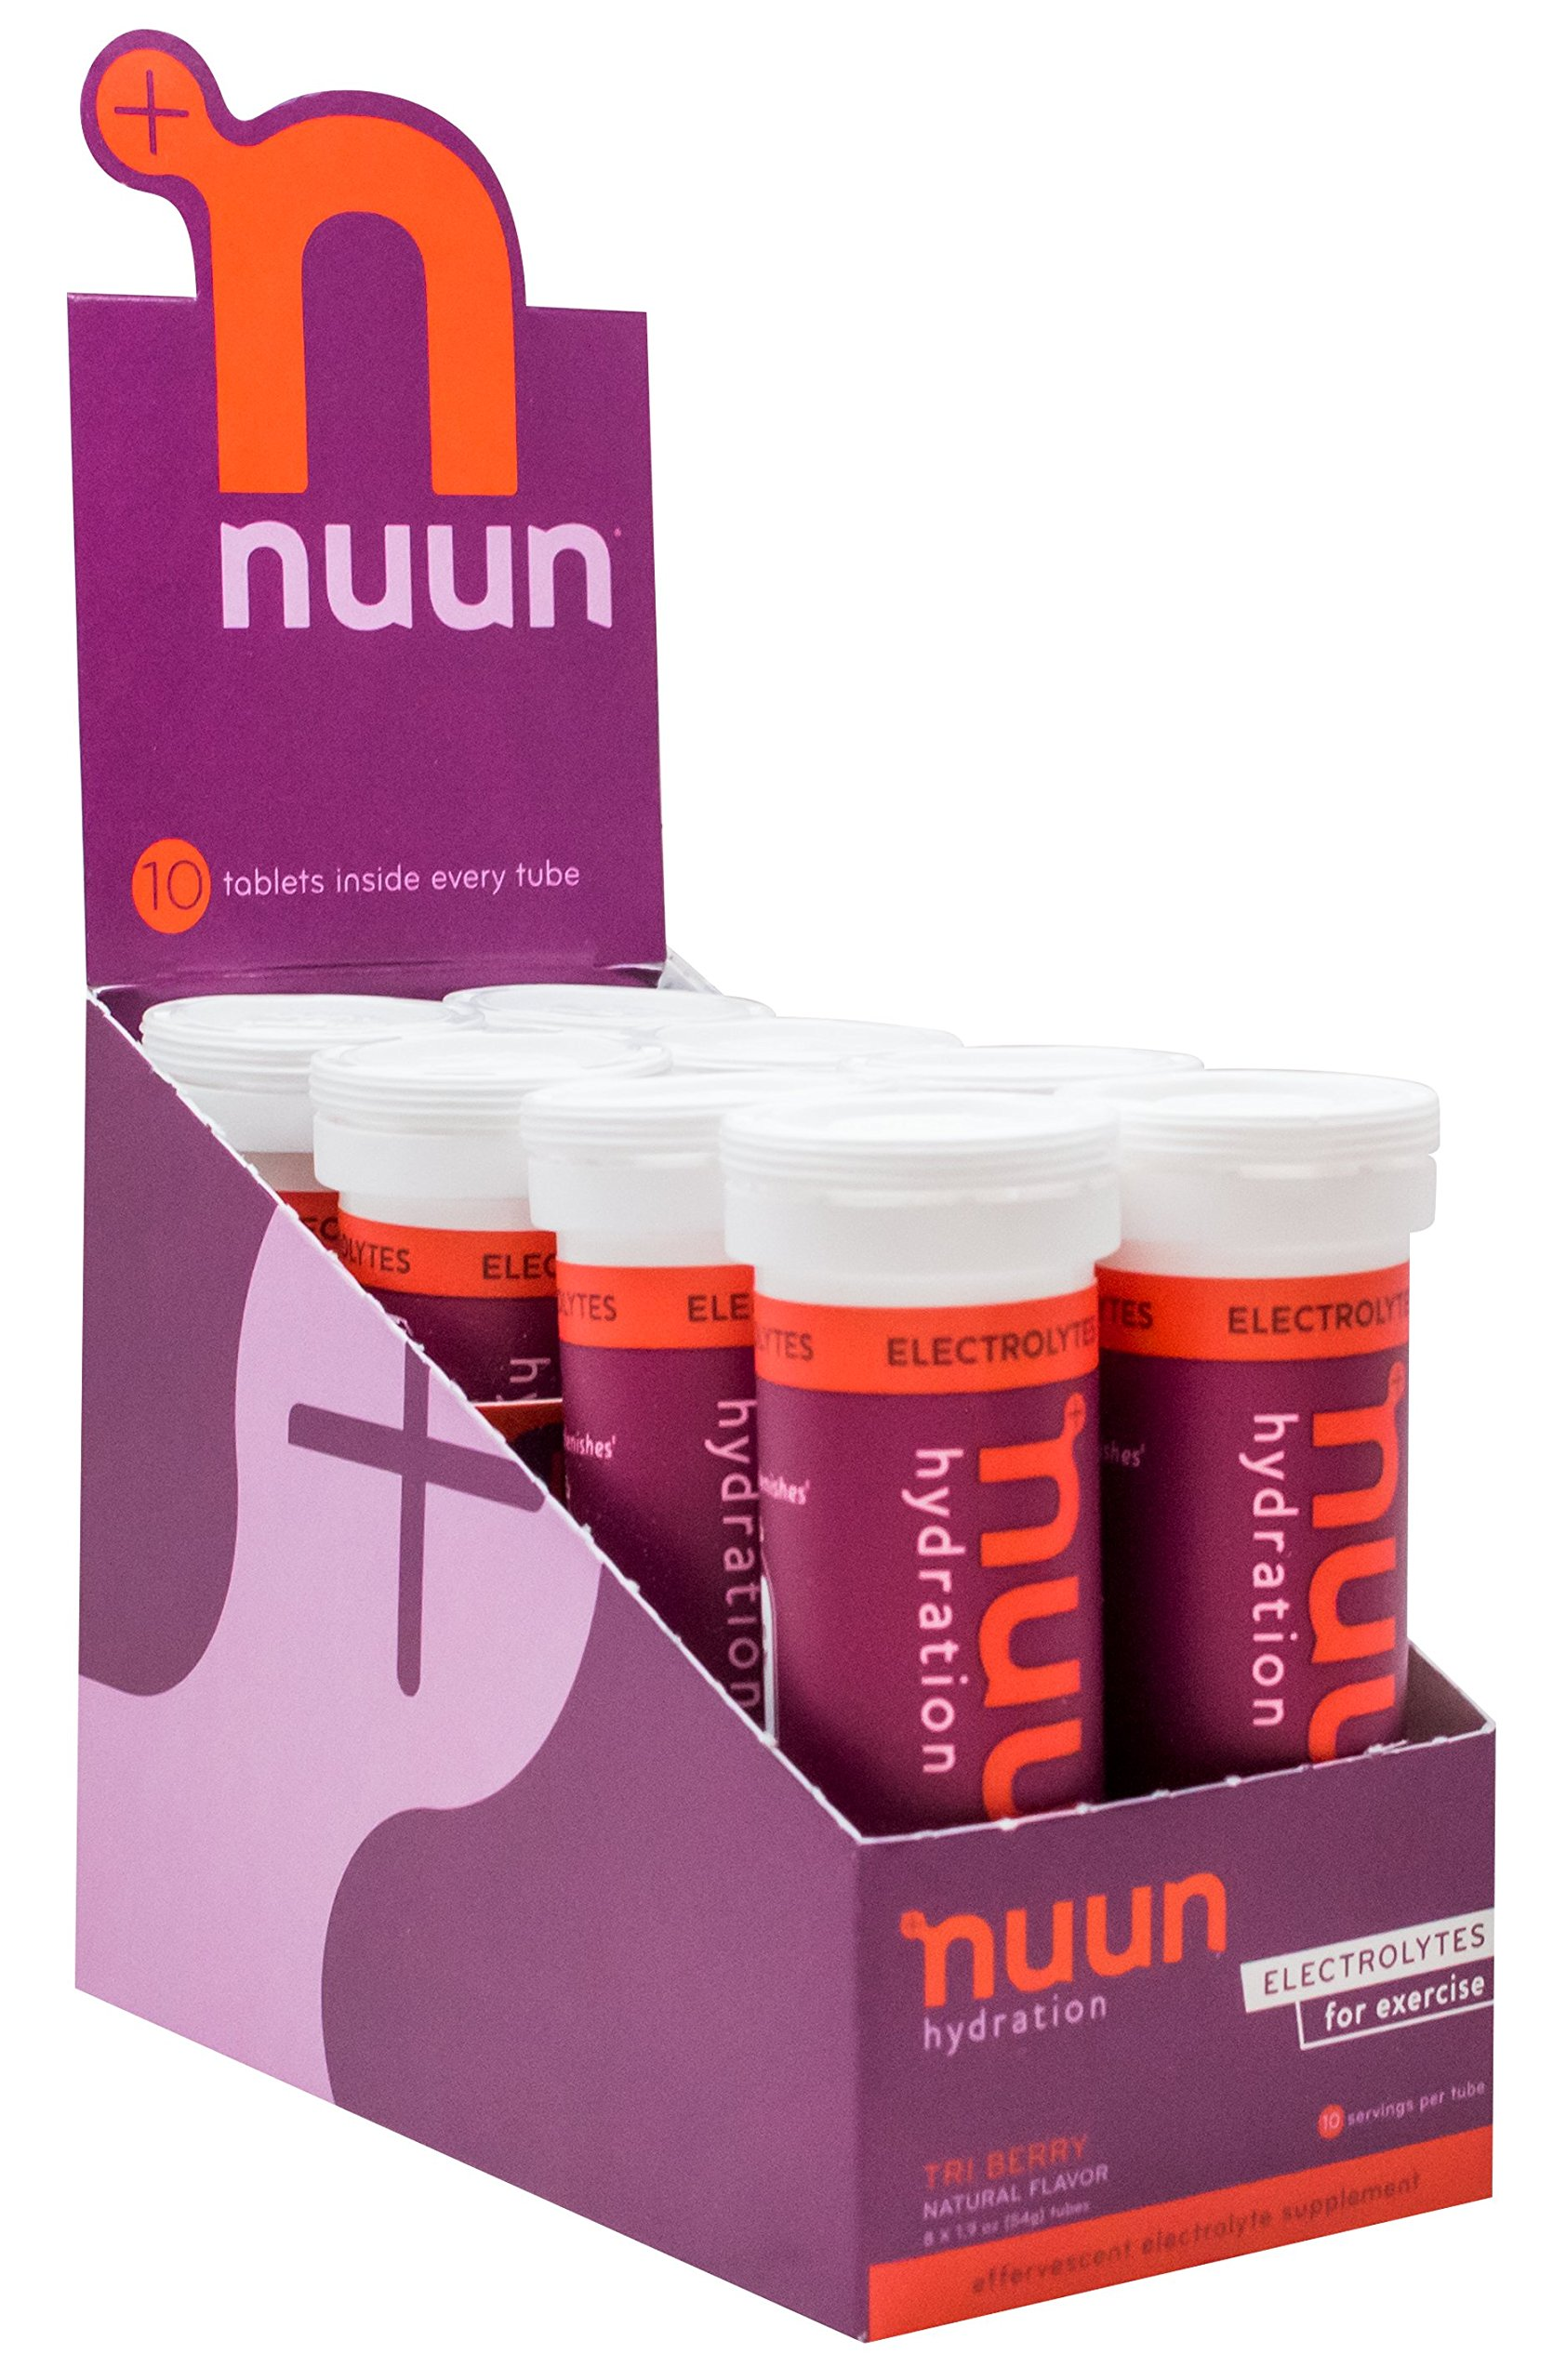 Watch Nuun Electrolyte and Hydration Replacement Tablets video